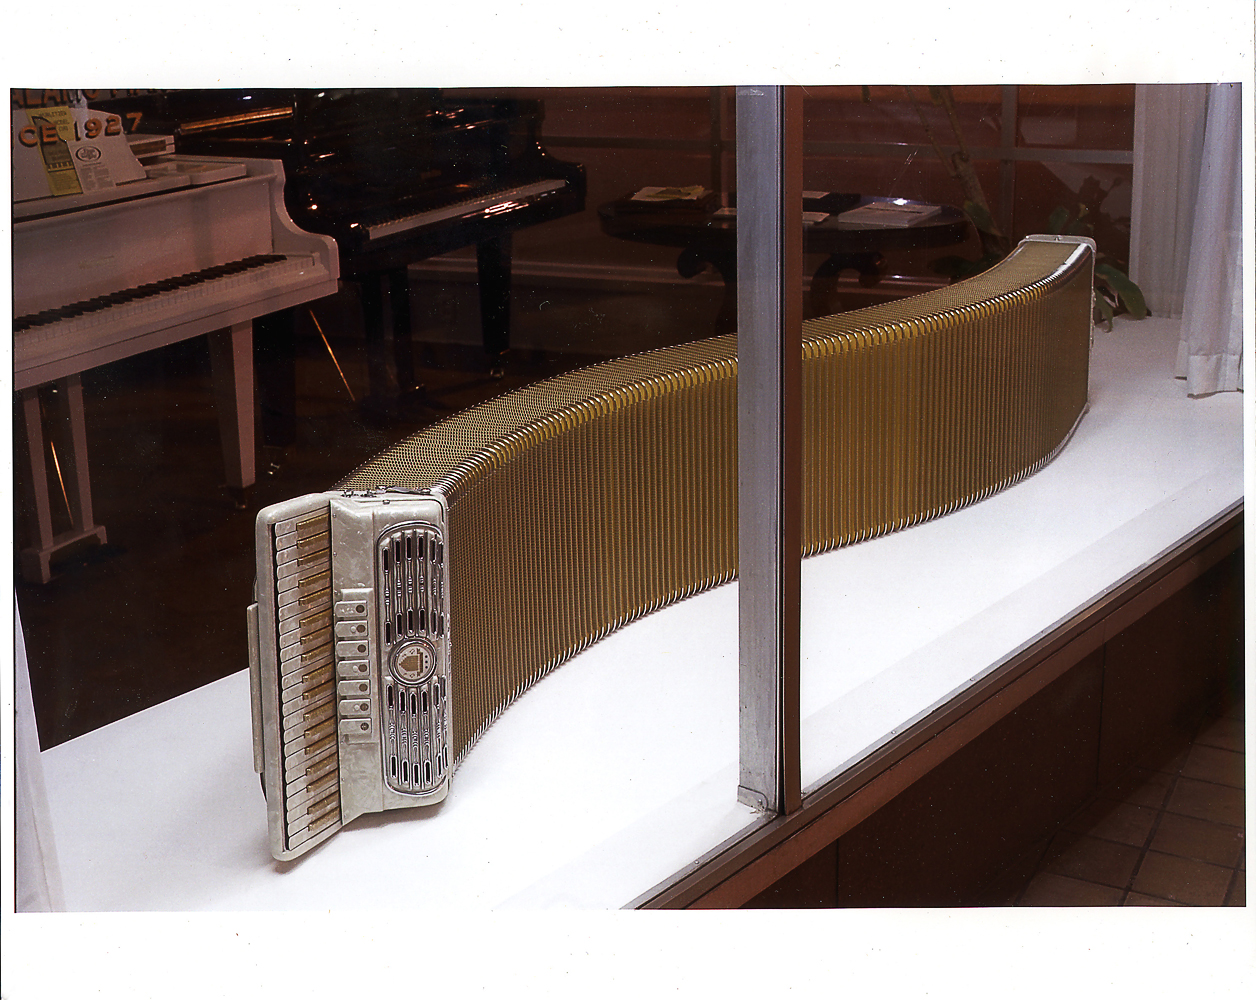 Accordion, 1999                                                              Connecting sound to visual experience is focal in Marclay's practice— Accordion, pictured here, is a sculpture comprising an altered piano accordion stretched to an almost hyperbolic length, reflecting the winding, breathy nature of the instrument's sound.